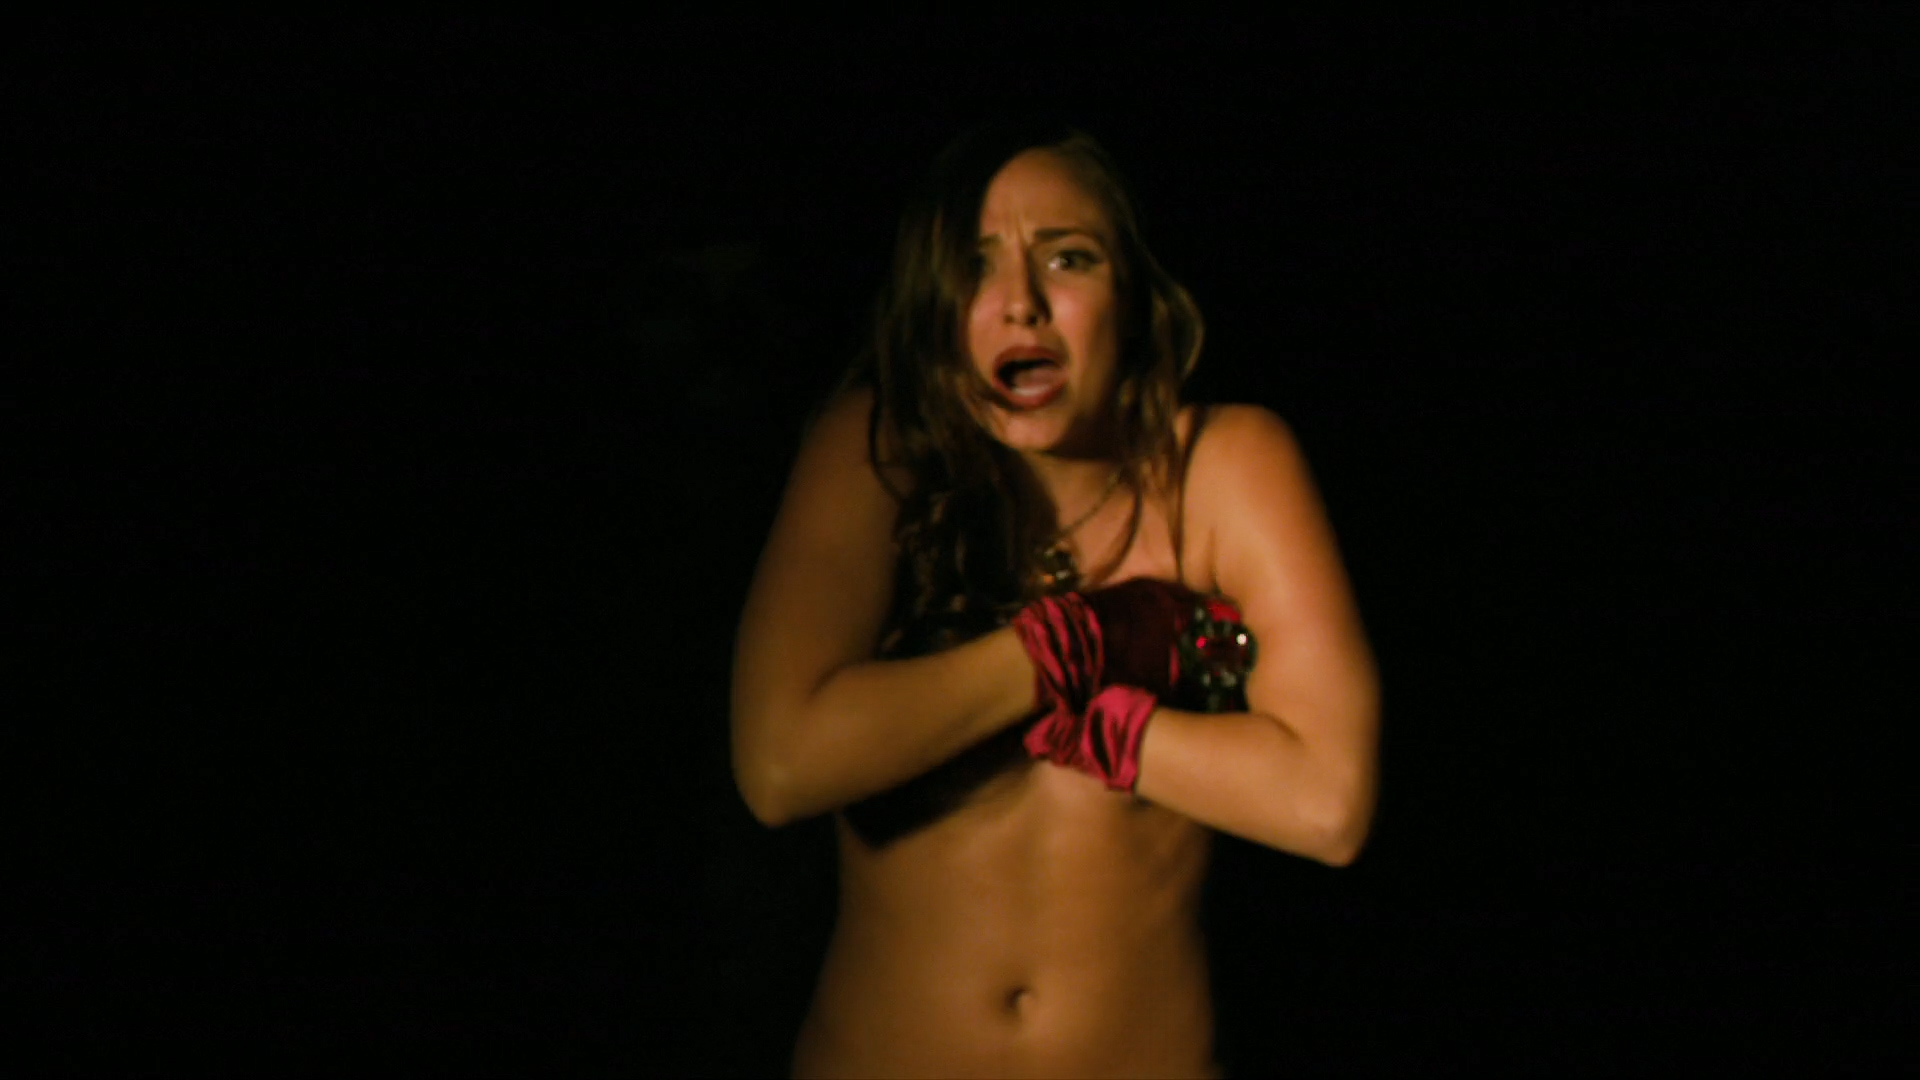 Briana Evigan nude topless with pasties - The Devil's Carnival (2012) hd1080p. (5)